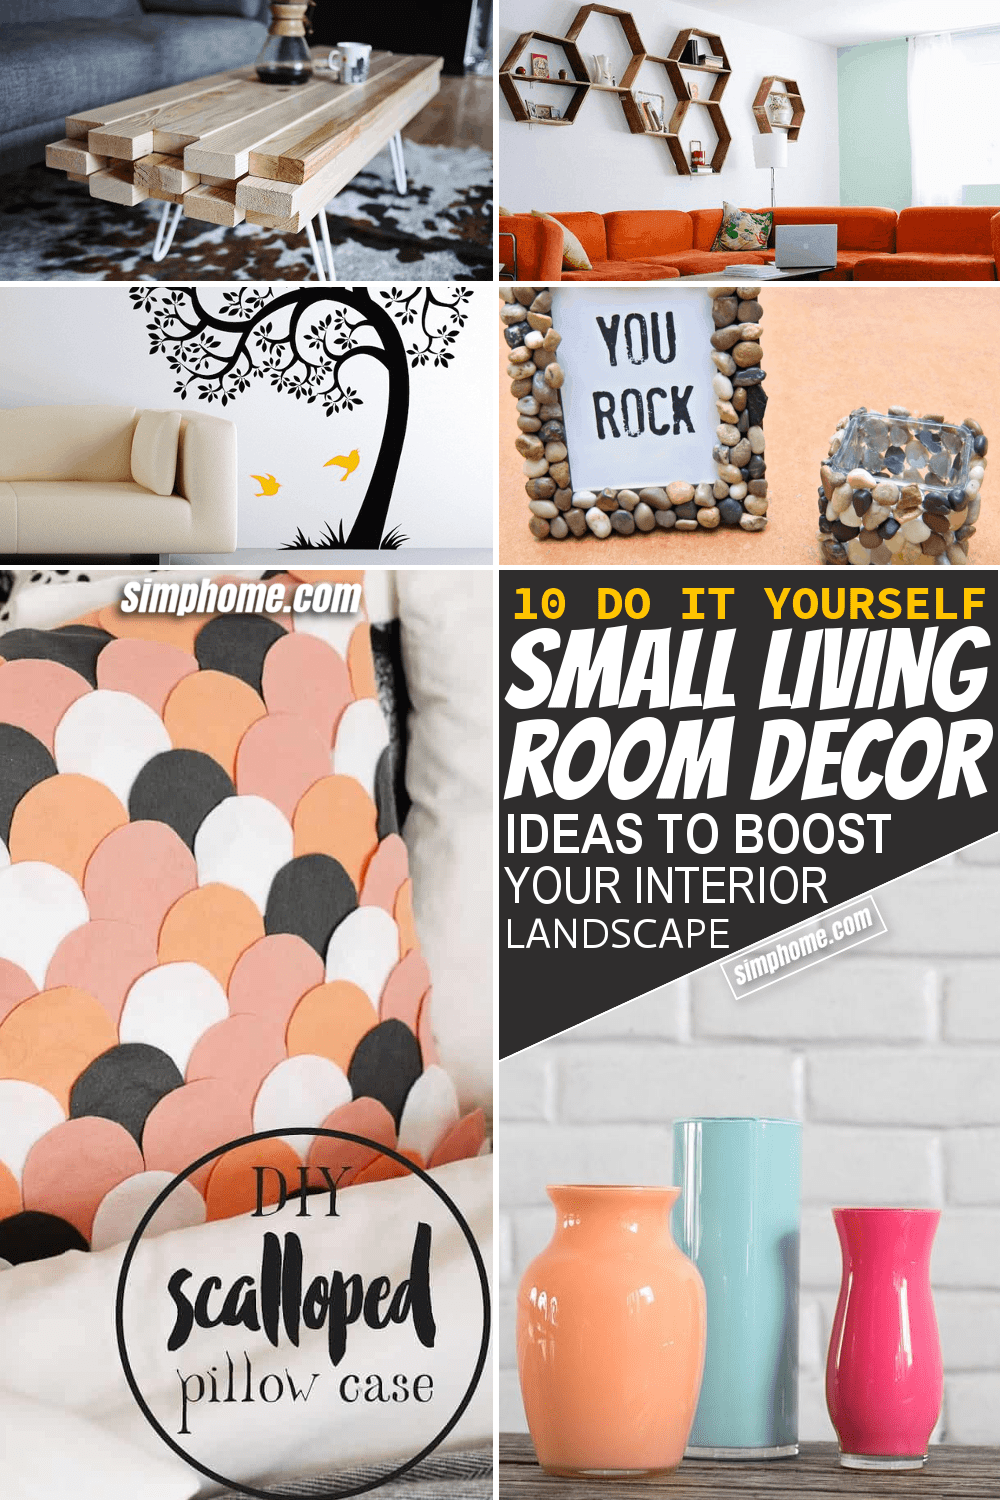 Simphome.com 10 DIY Small Living Room Decor Ideas Featured Pinterest Image